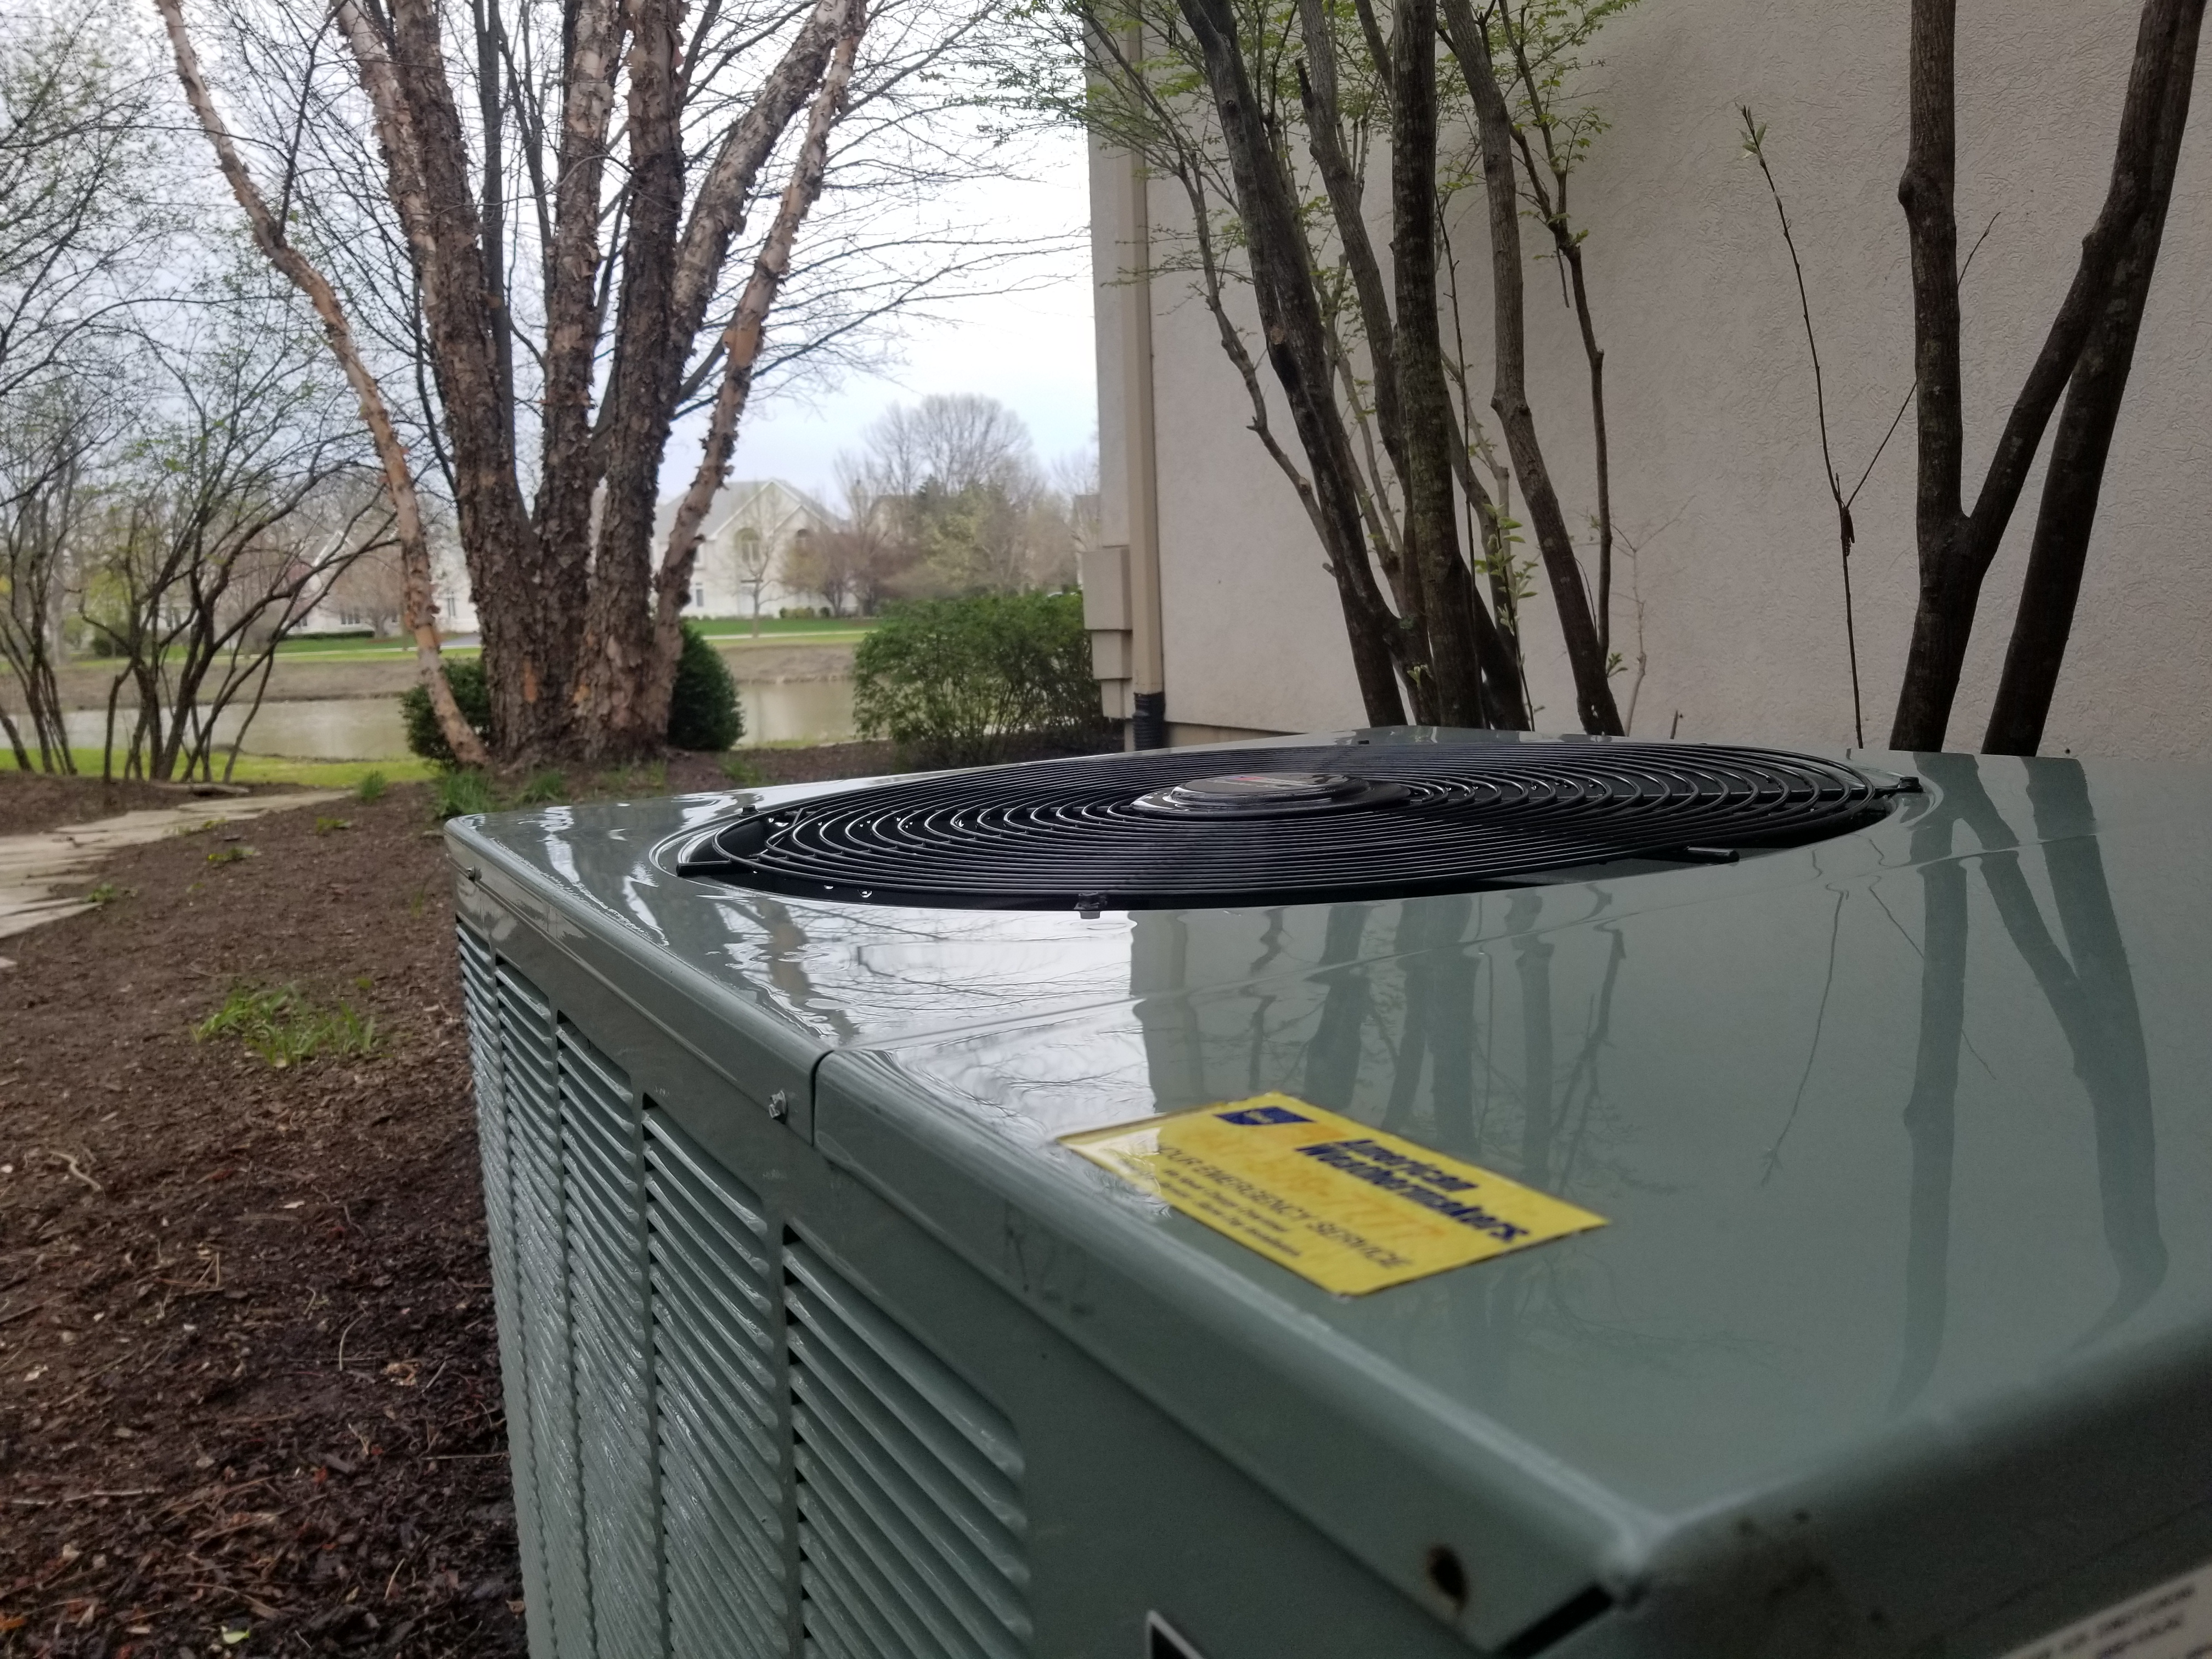 Performed annual maintenance on the Rheem and Amana air conditioning systems and made adjustments to improve the overall efficiency and life expectancy of the equipment